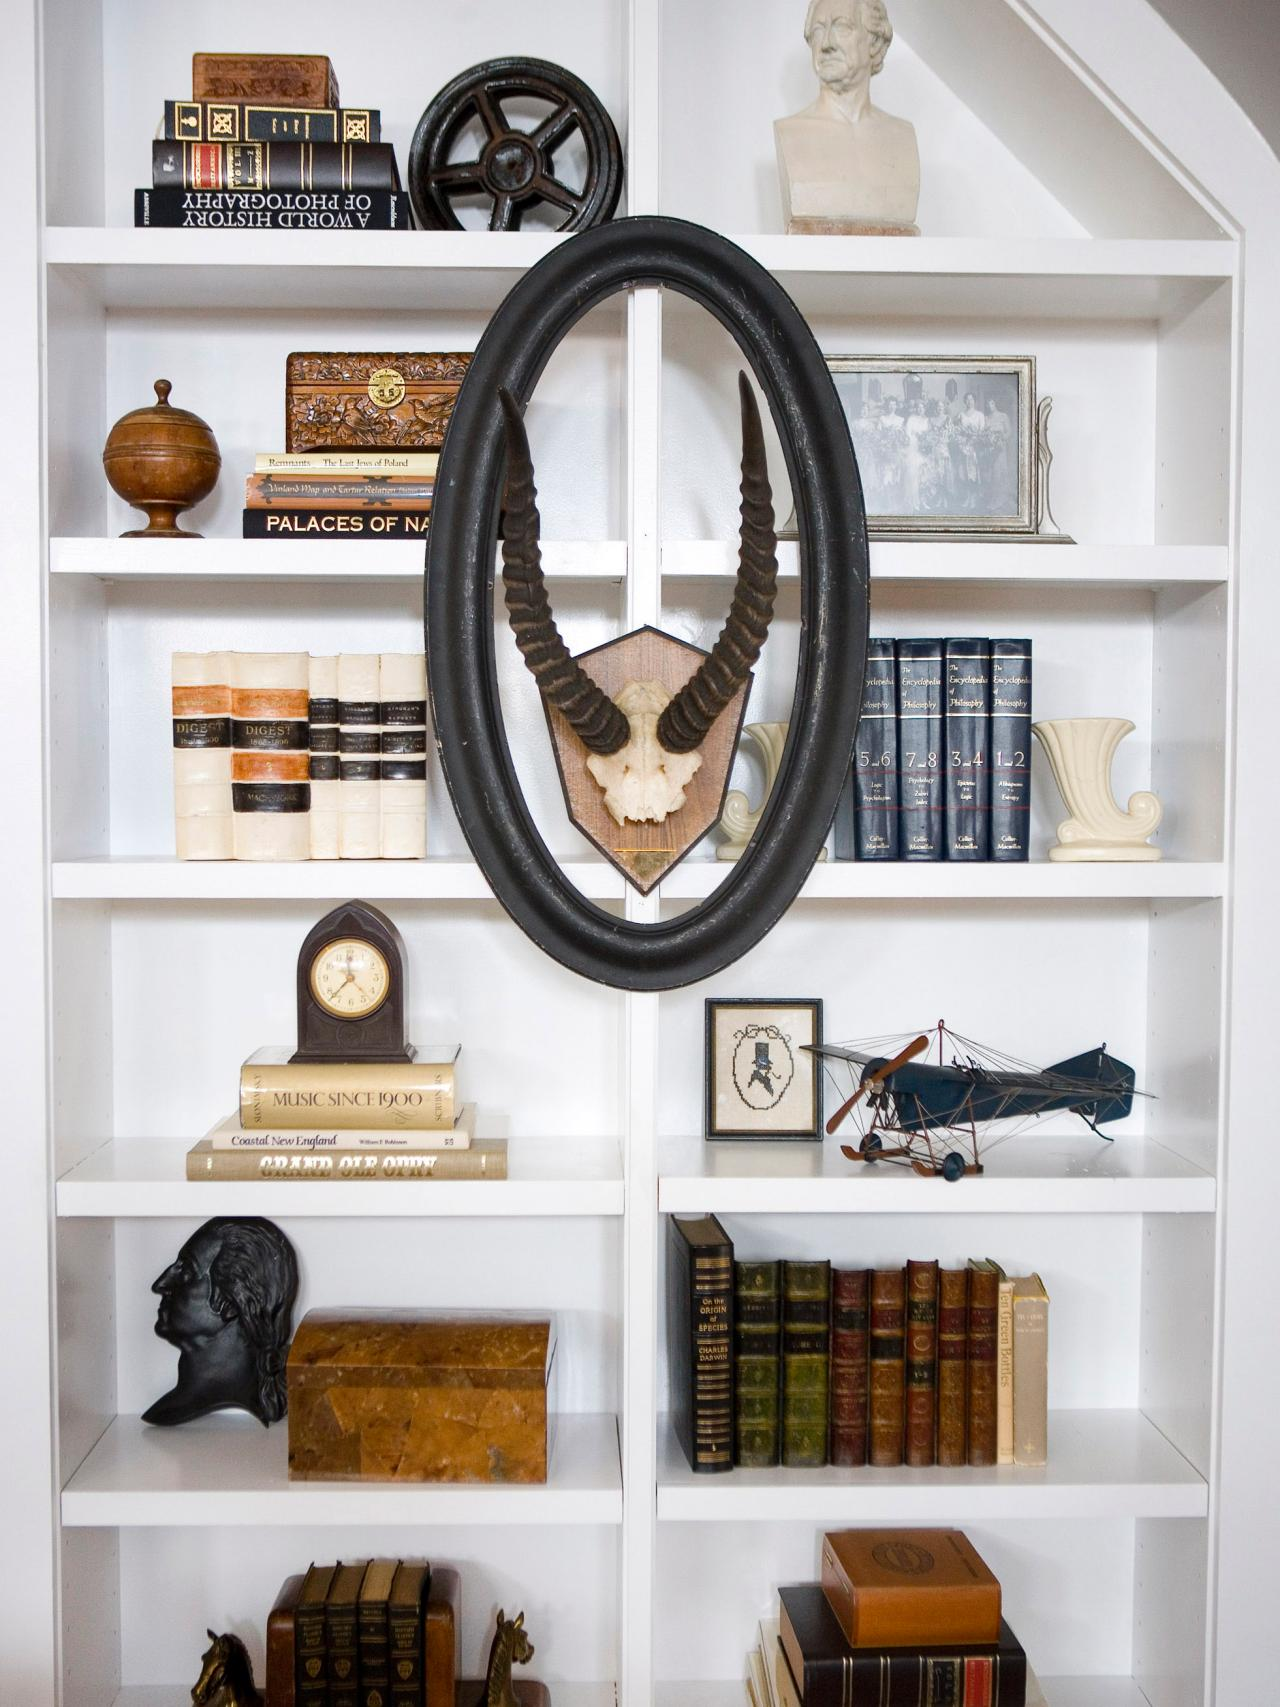 Wall Shelf Home Decor : Bookshelf and wall shelf decorating ideas interior